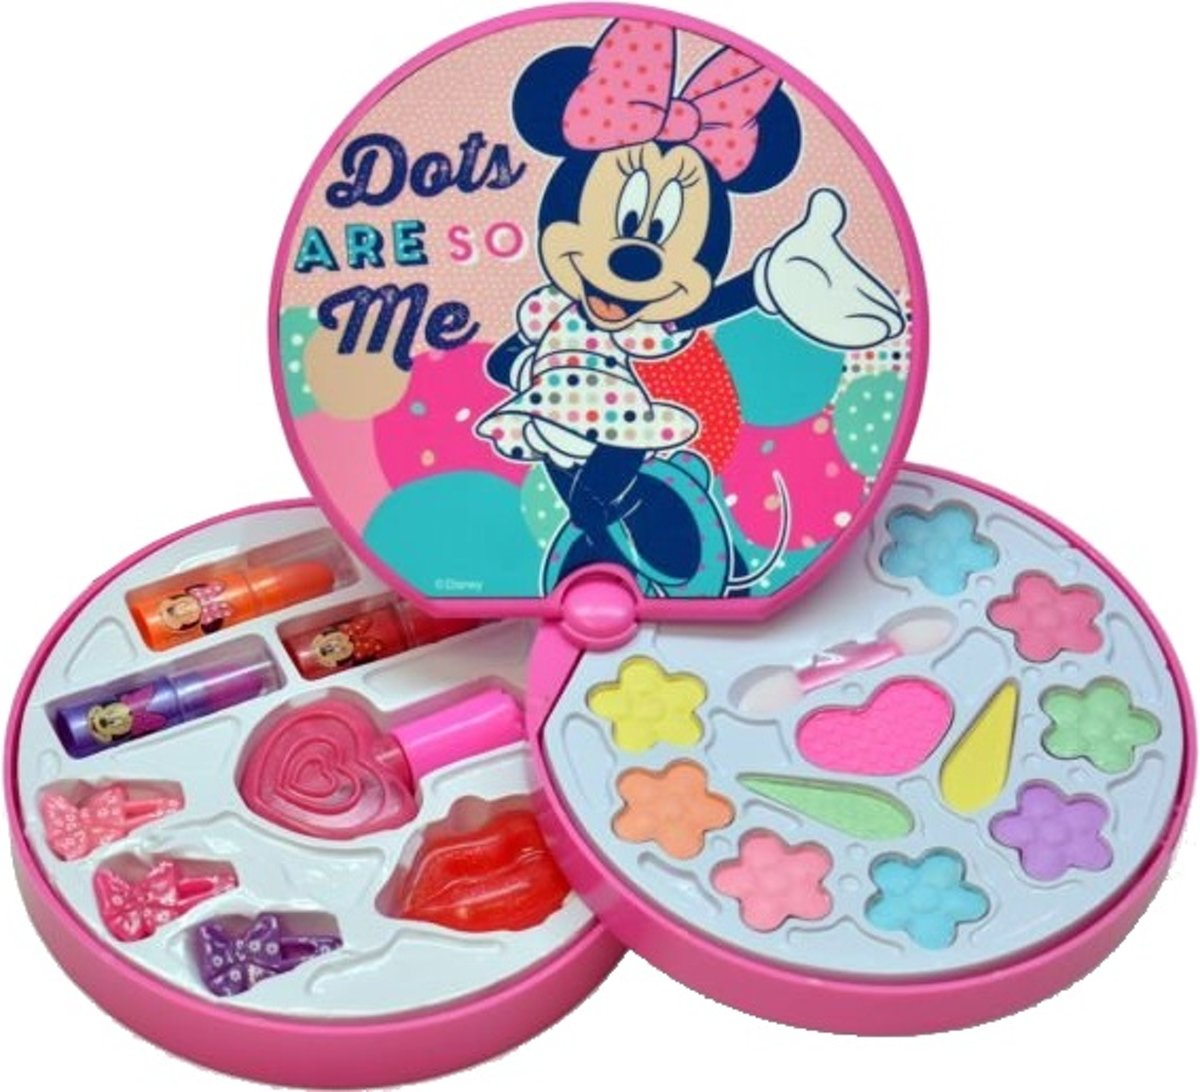 Falca Make-upset Disney Minnie Mouse 9-delig